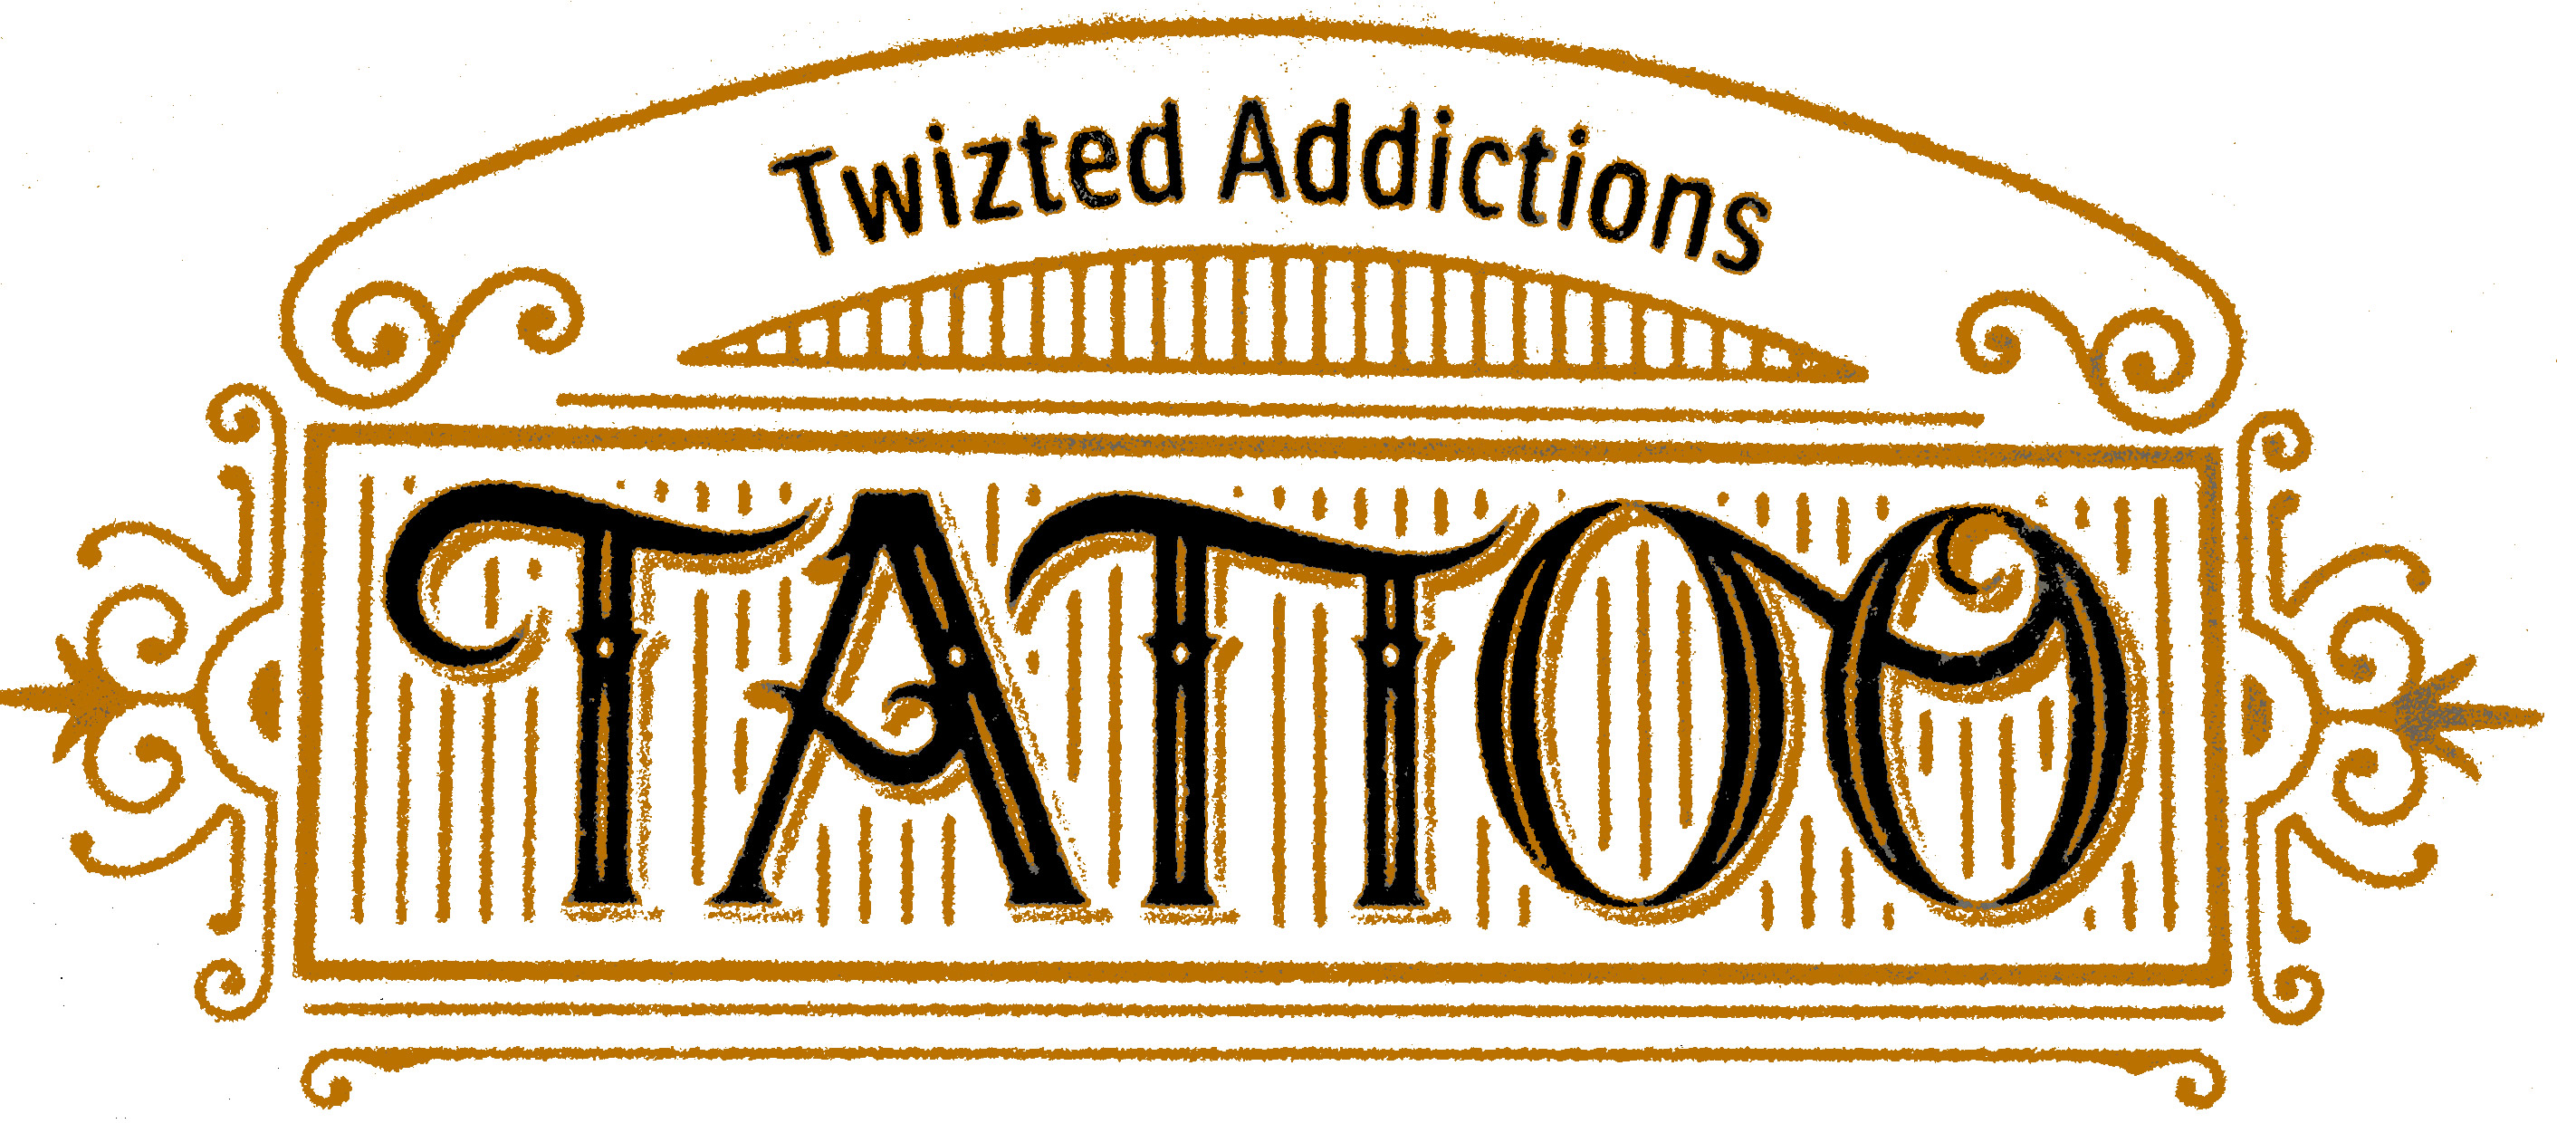 Twizted Addictions